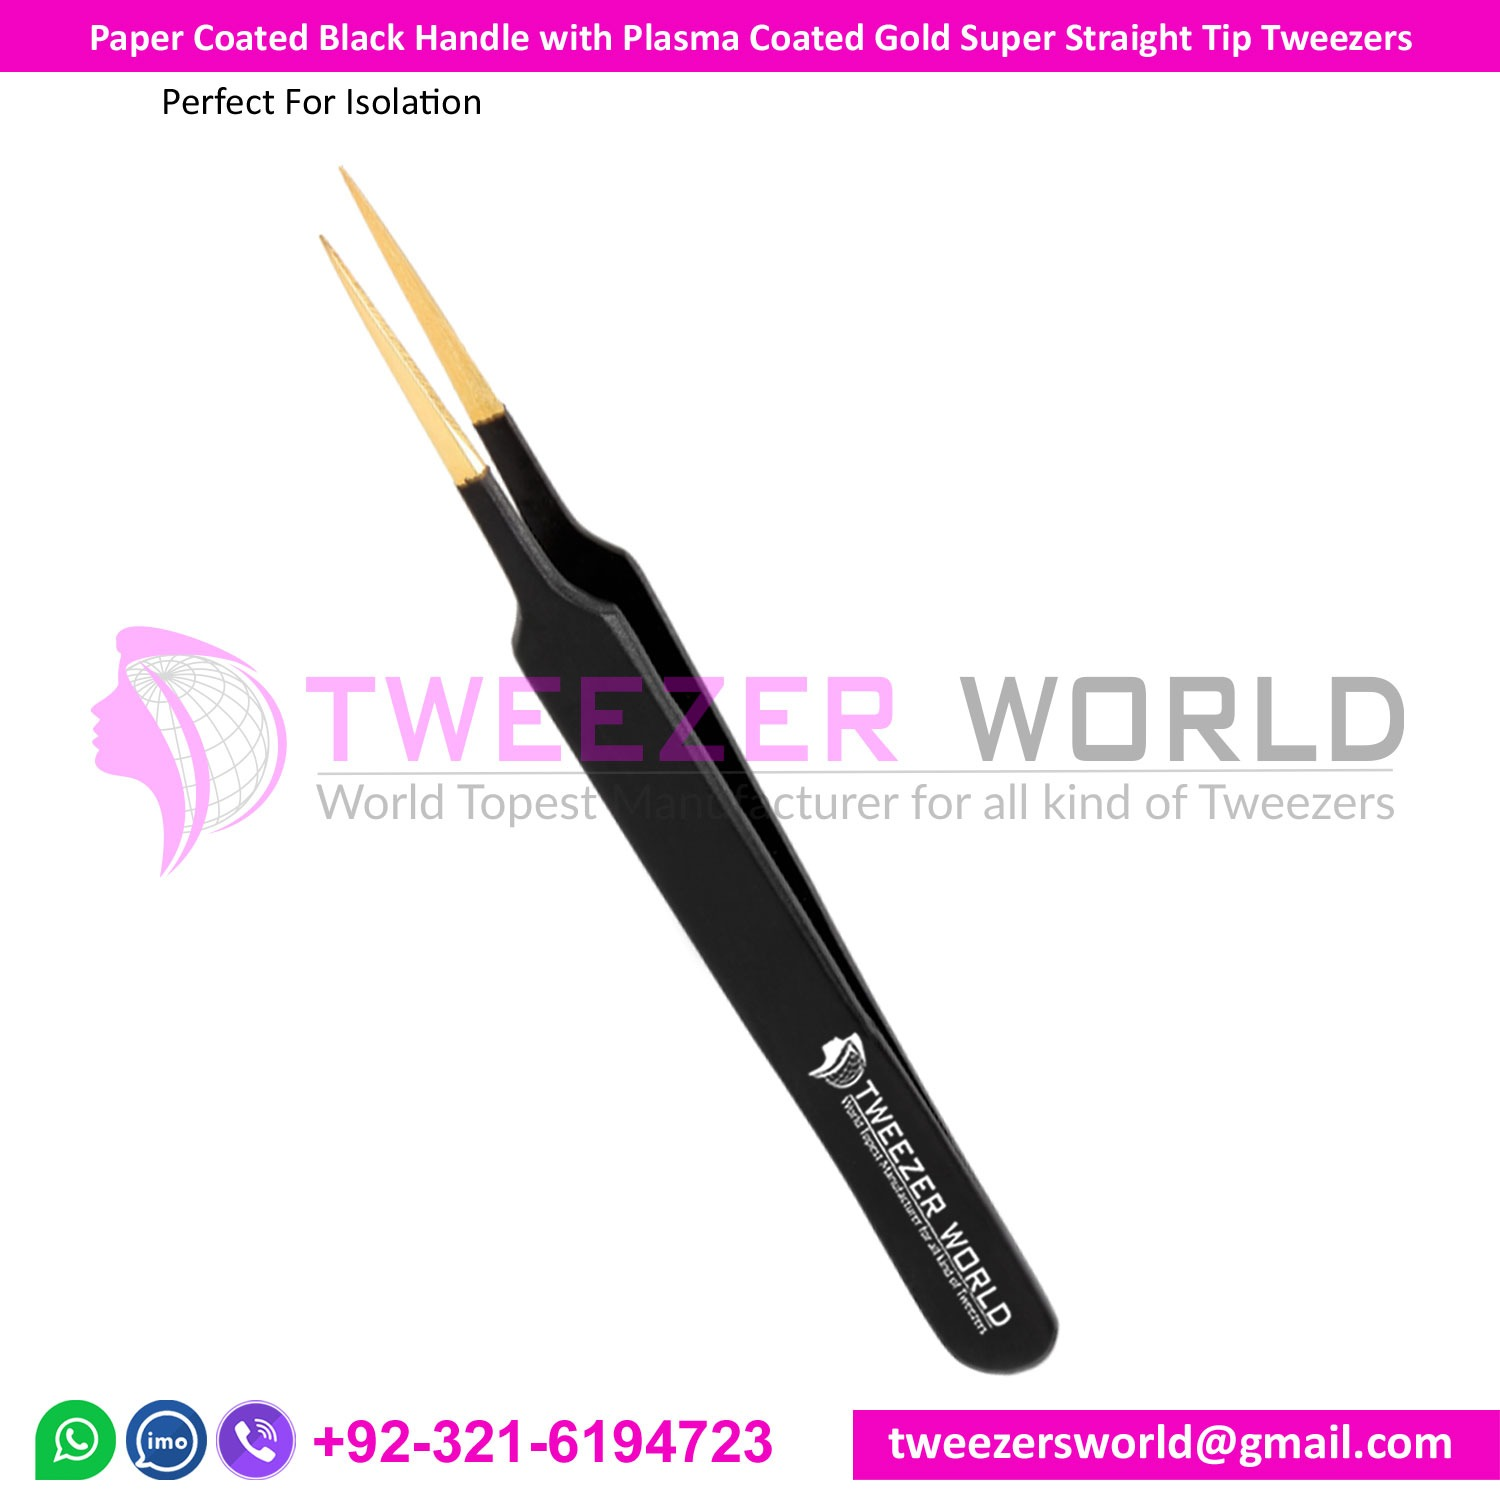 Paper Coated Black Handle with Plasma Coated Gold Super Straight Tip Tweezers